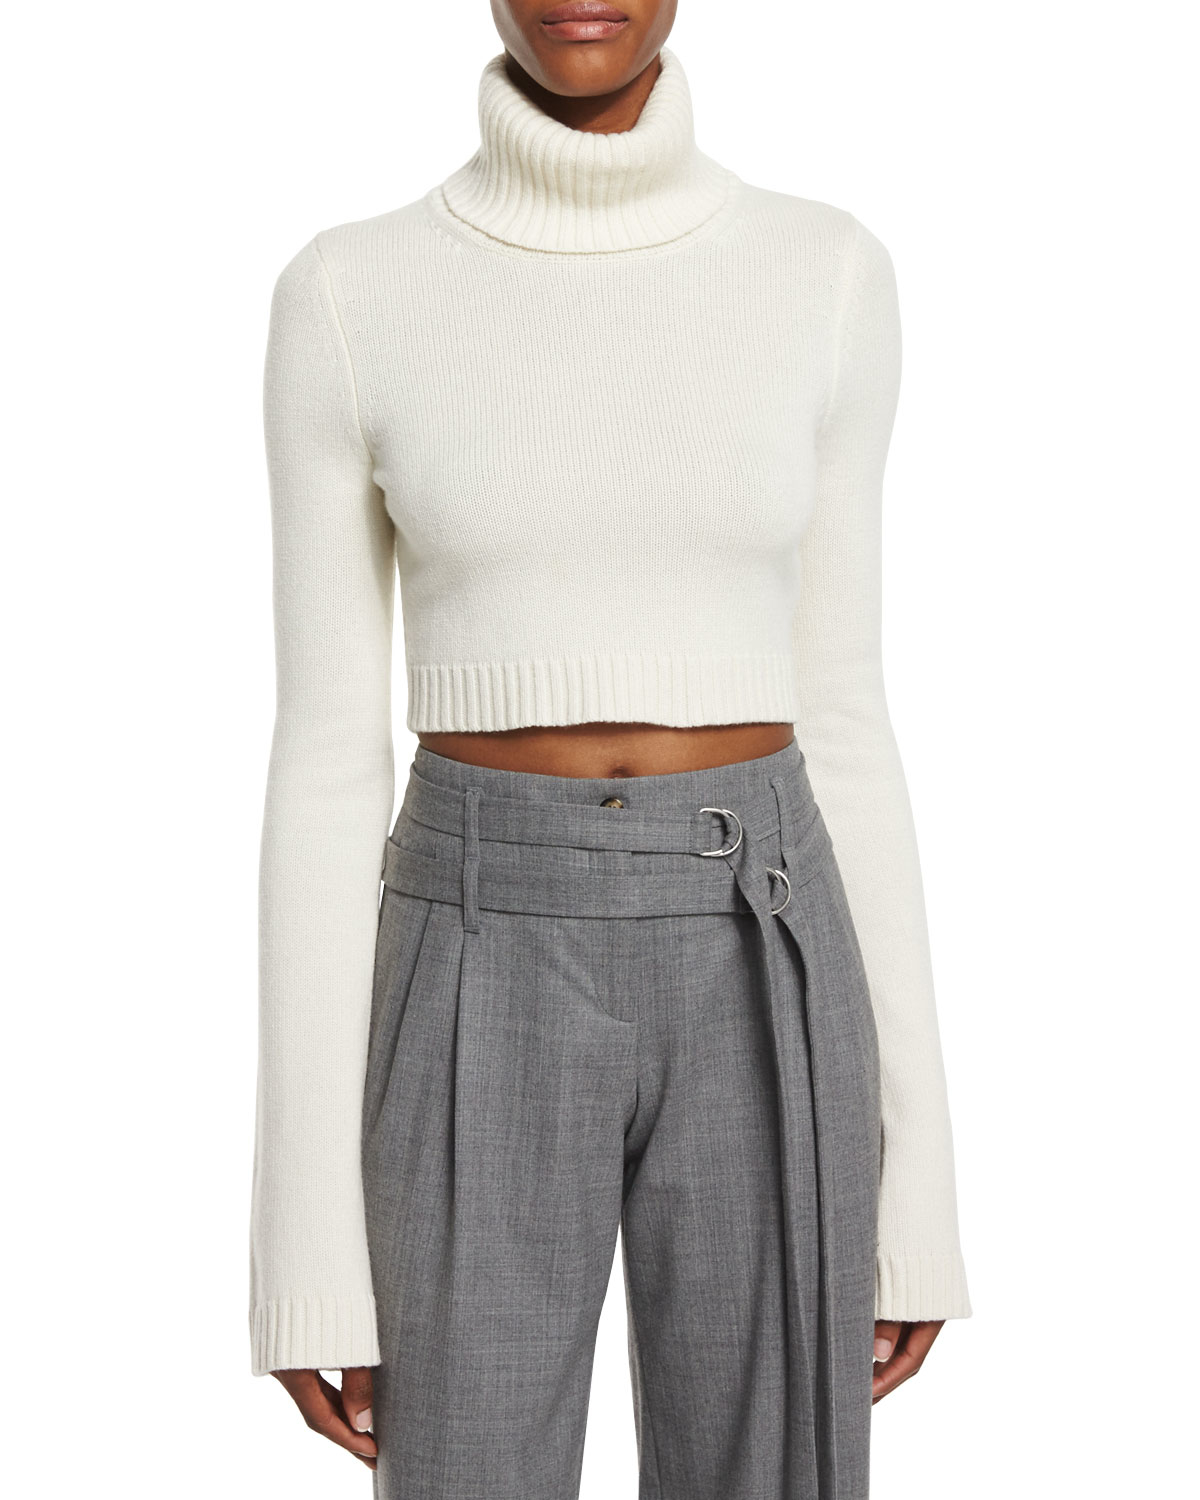 Michael kors Cropped Cashmere Turtleneck Sweater in White | Lyst